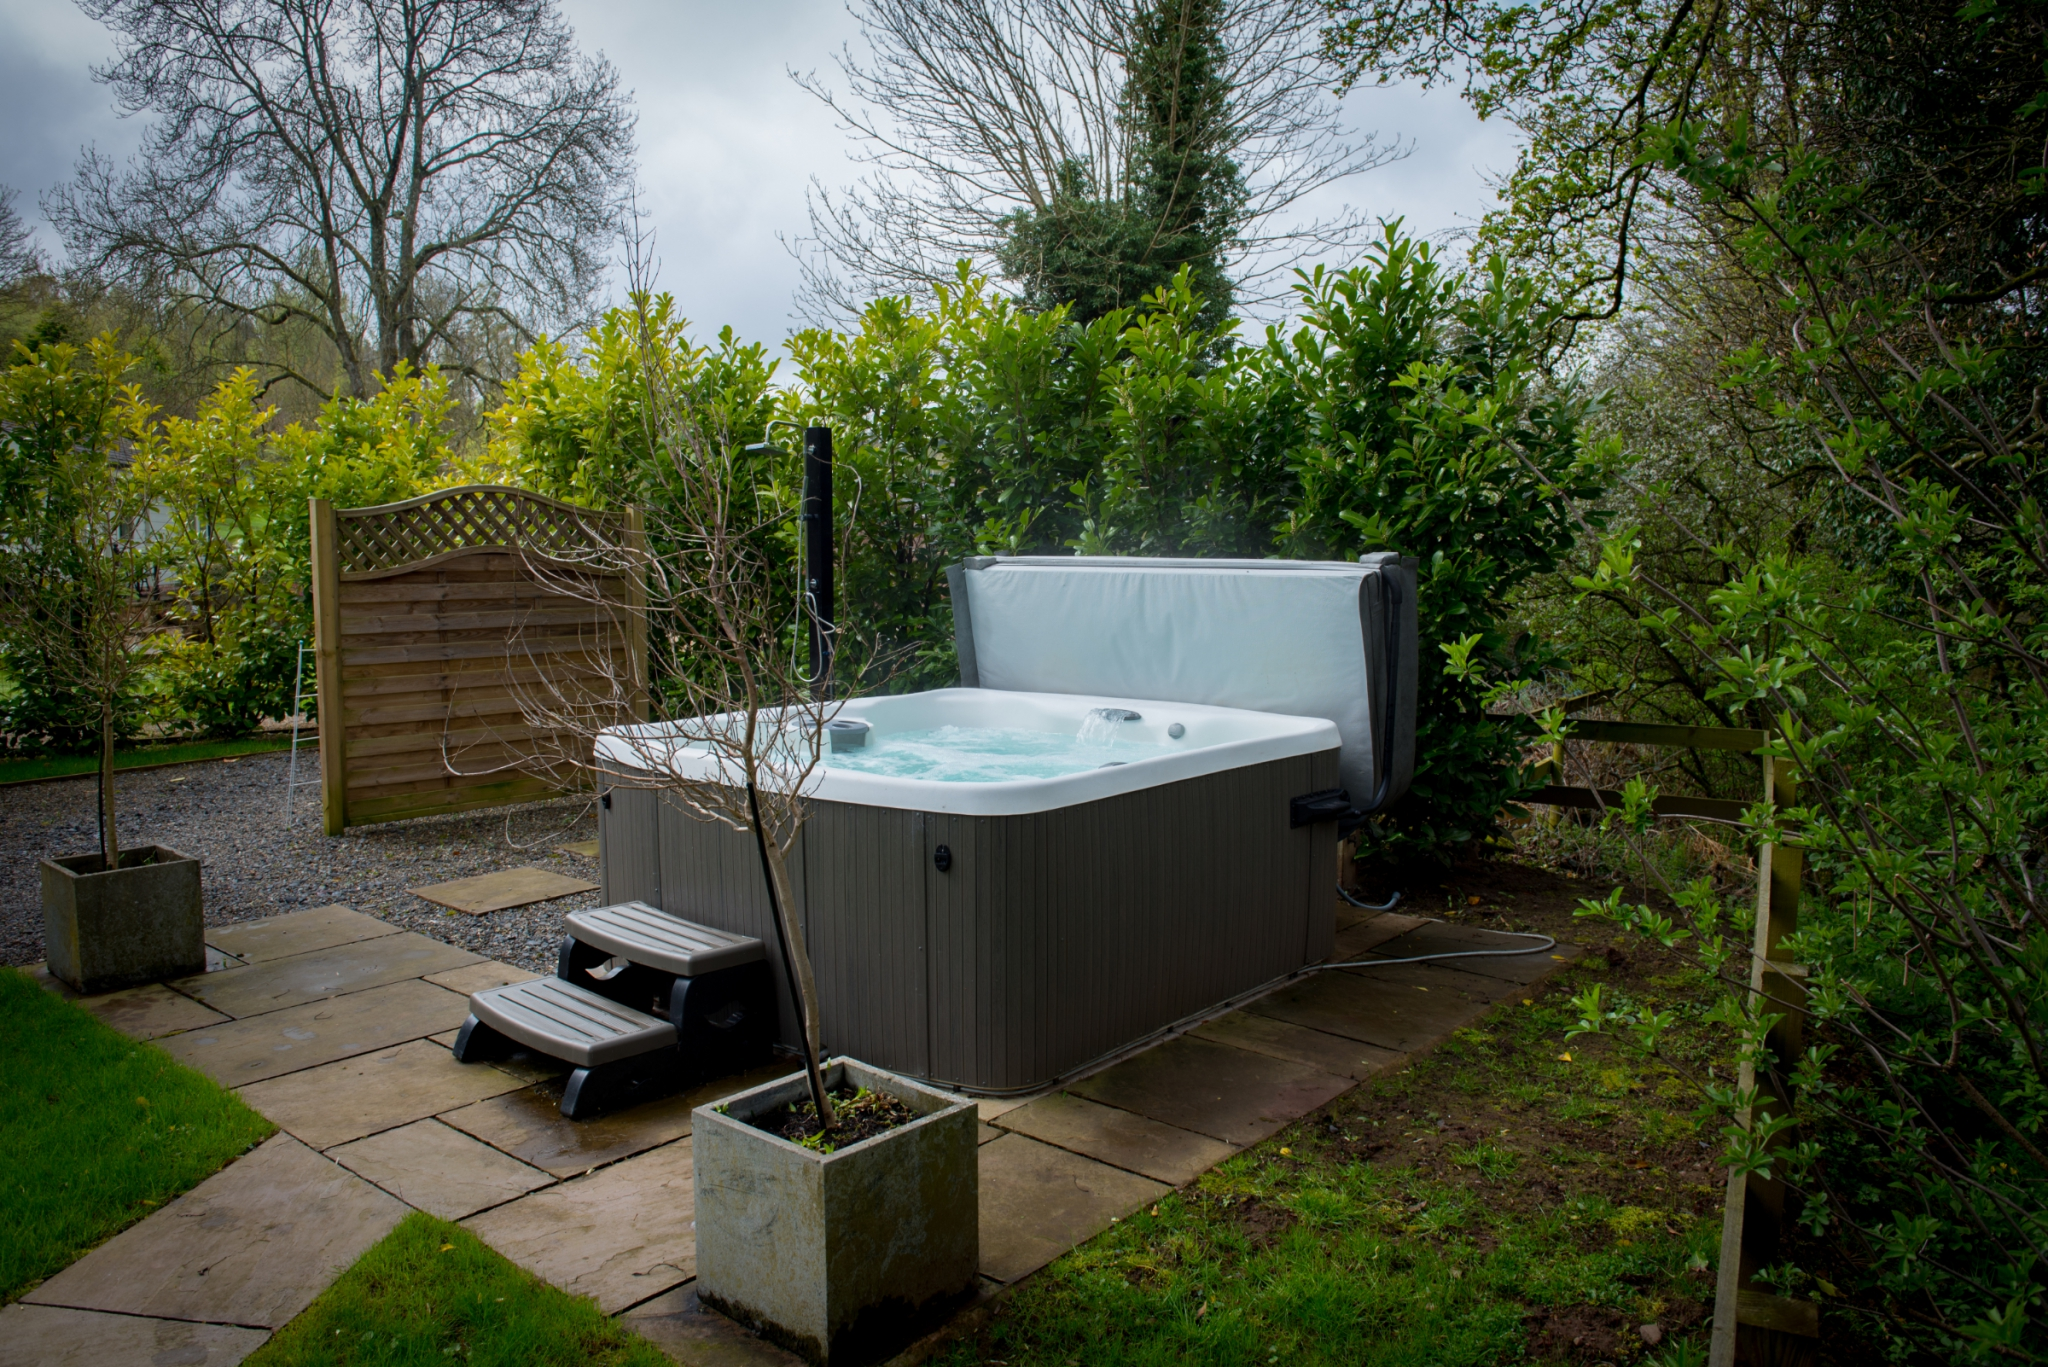 Outdoor hot tub at The Snug